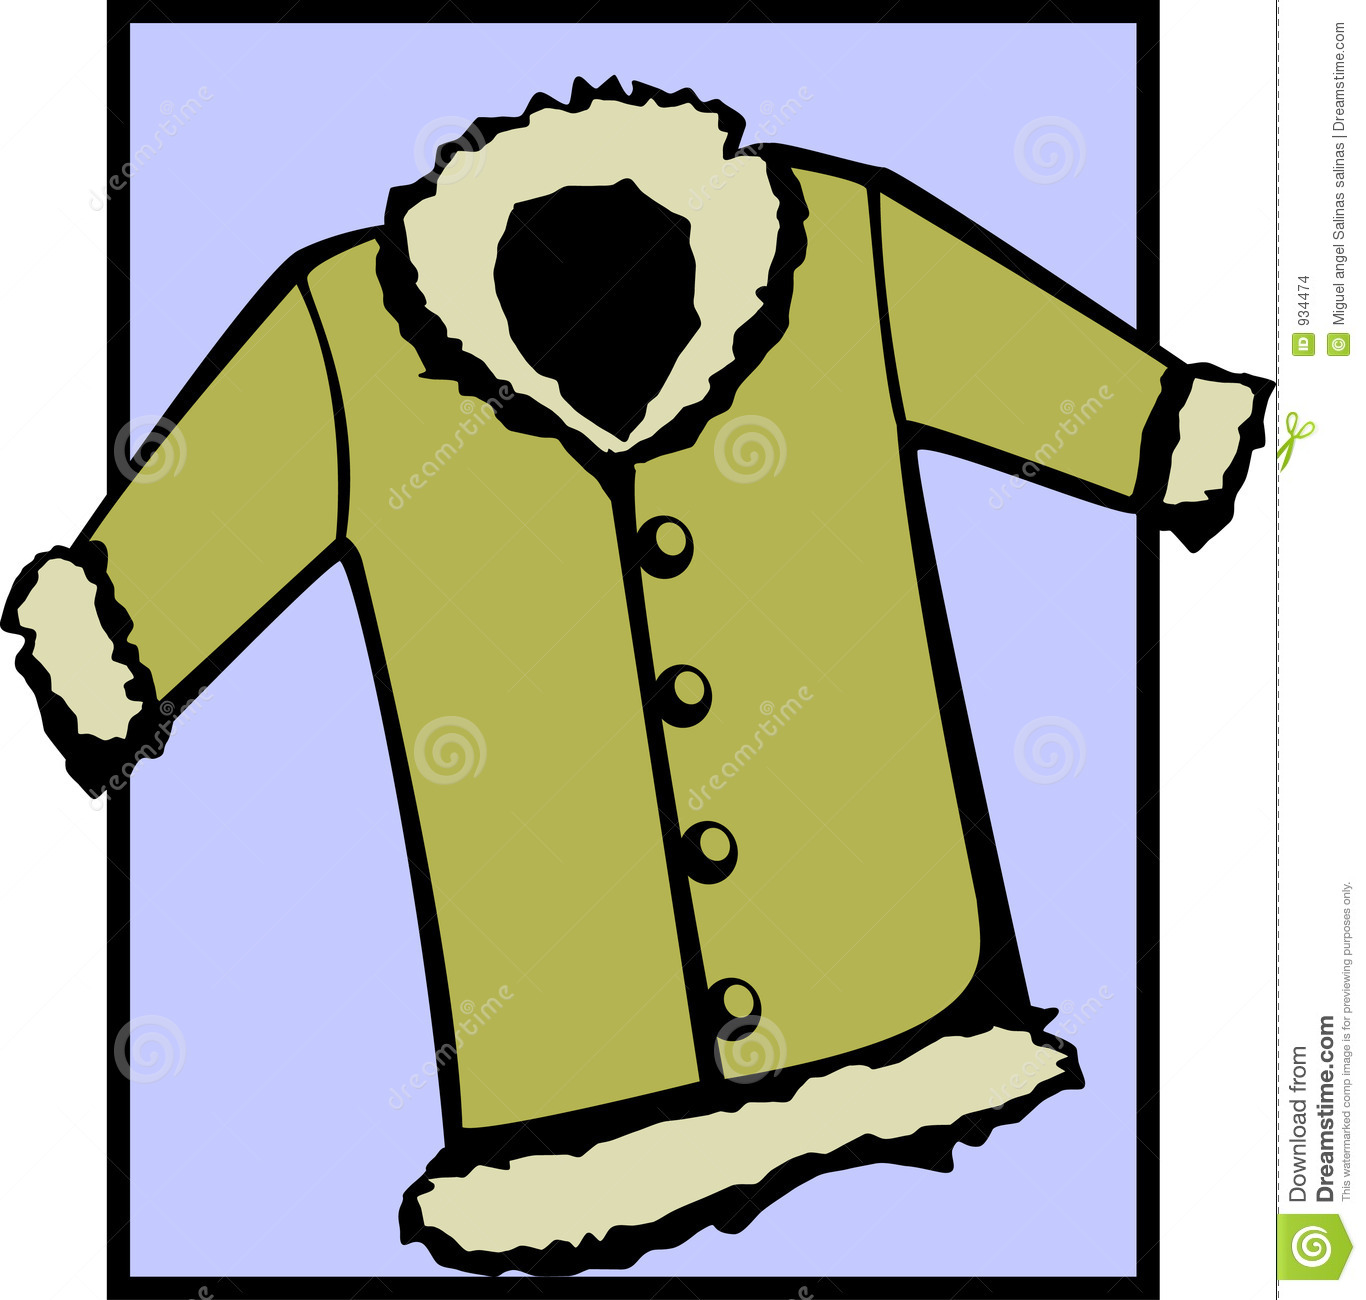 clipart panda winter - photo #37